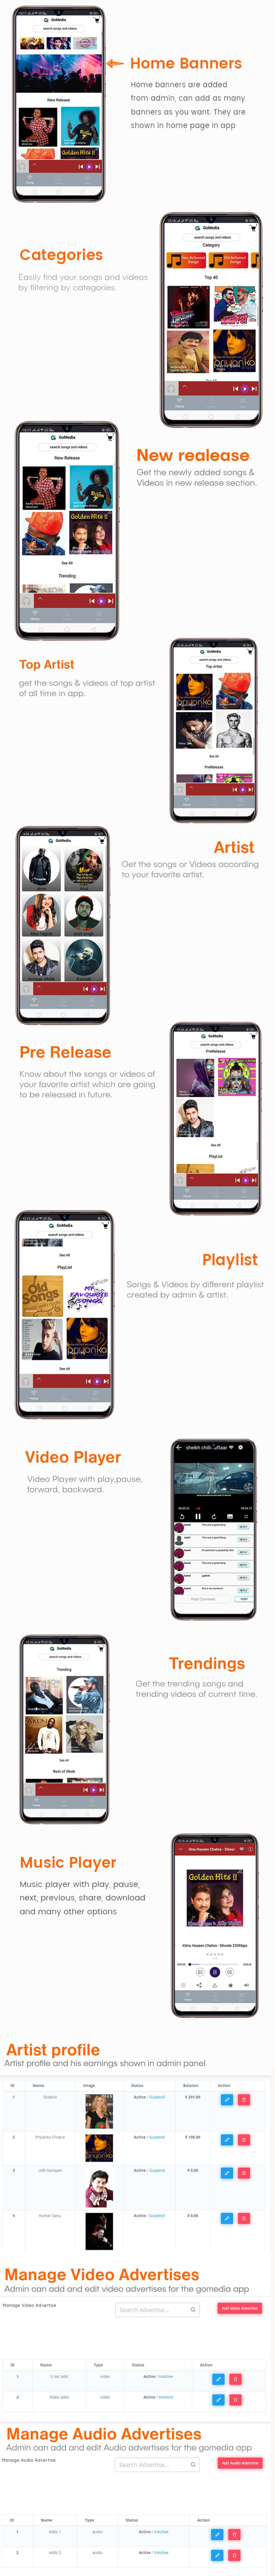 create music video android app